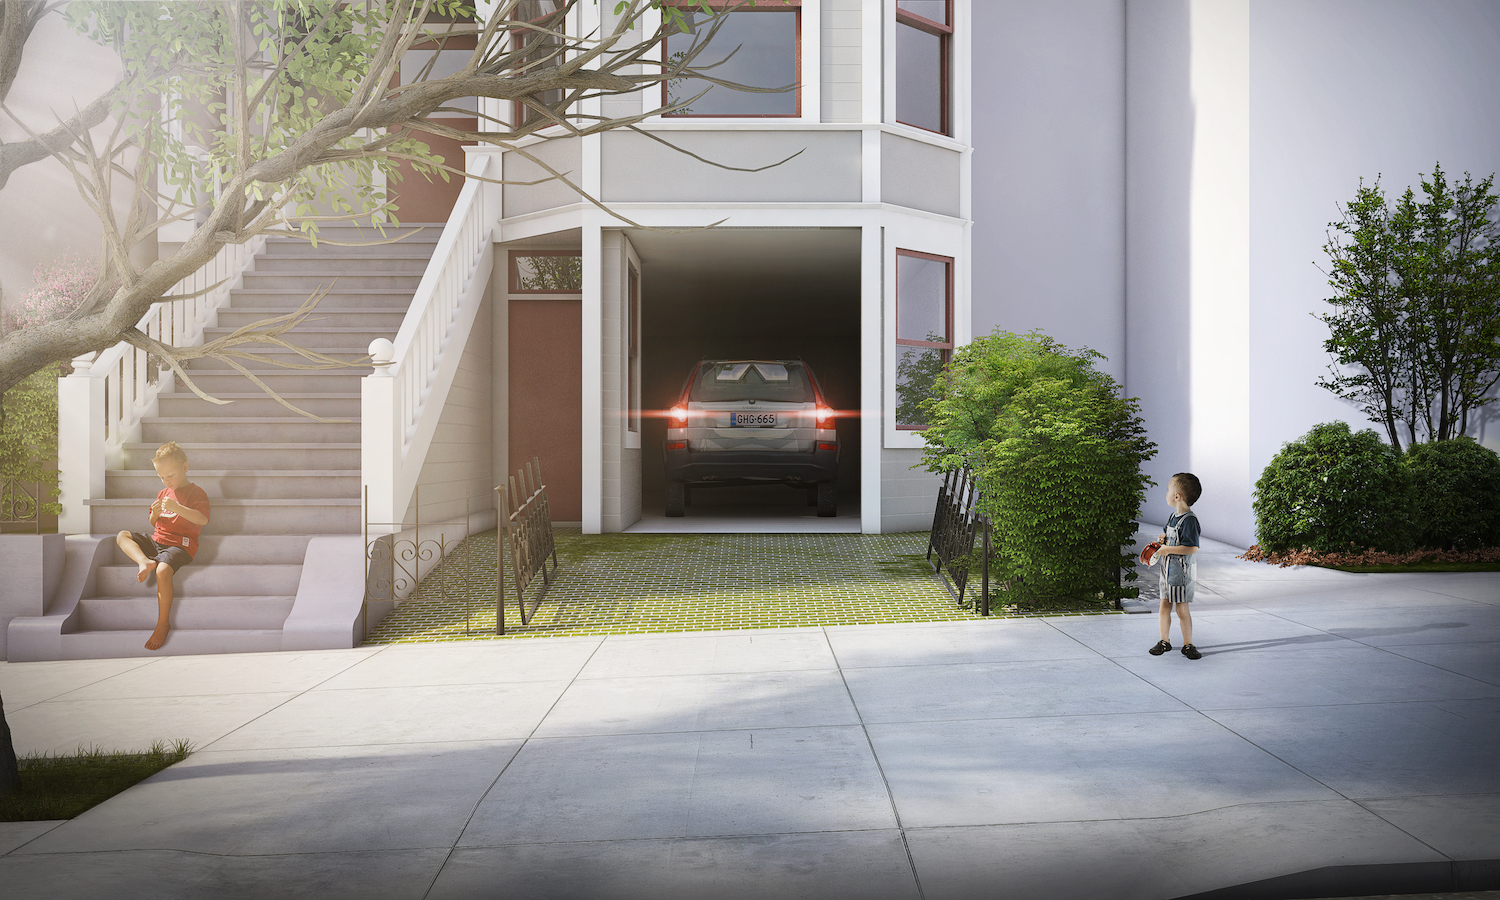 21st street secret garage door open facade rendering san francisco.jpg